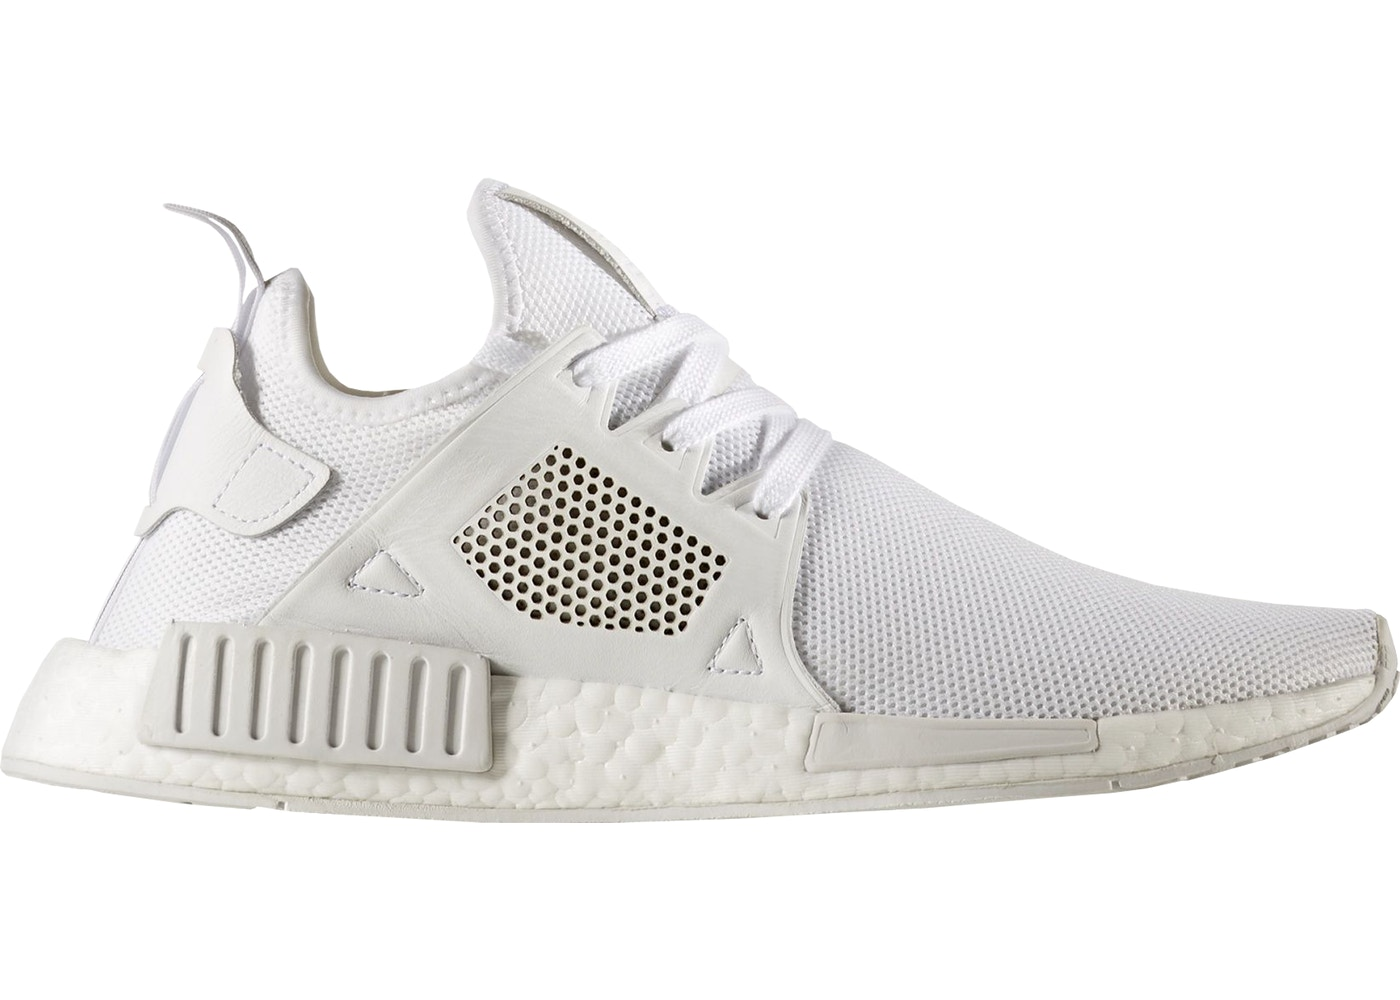 reputable site e3251 86b23 Buy adidas NMD XR1 Shoes & Deadstock Sneakers